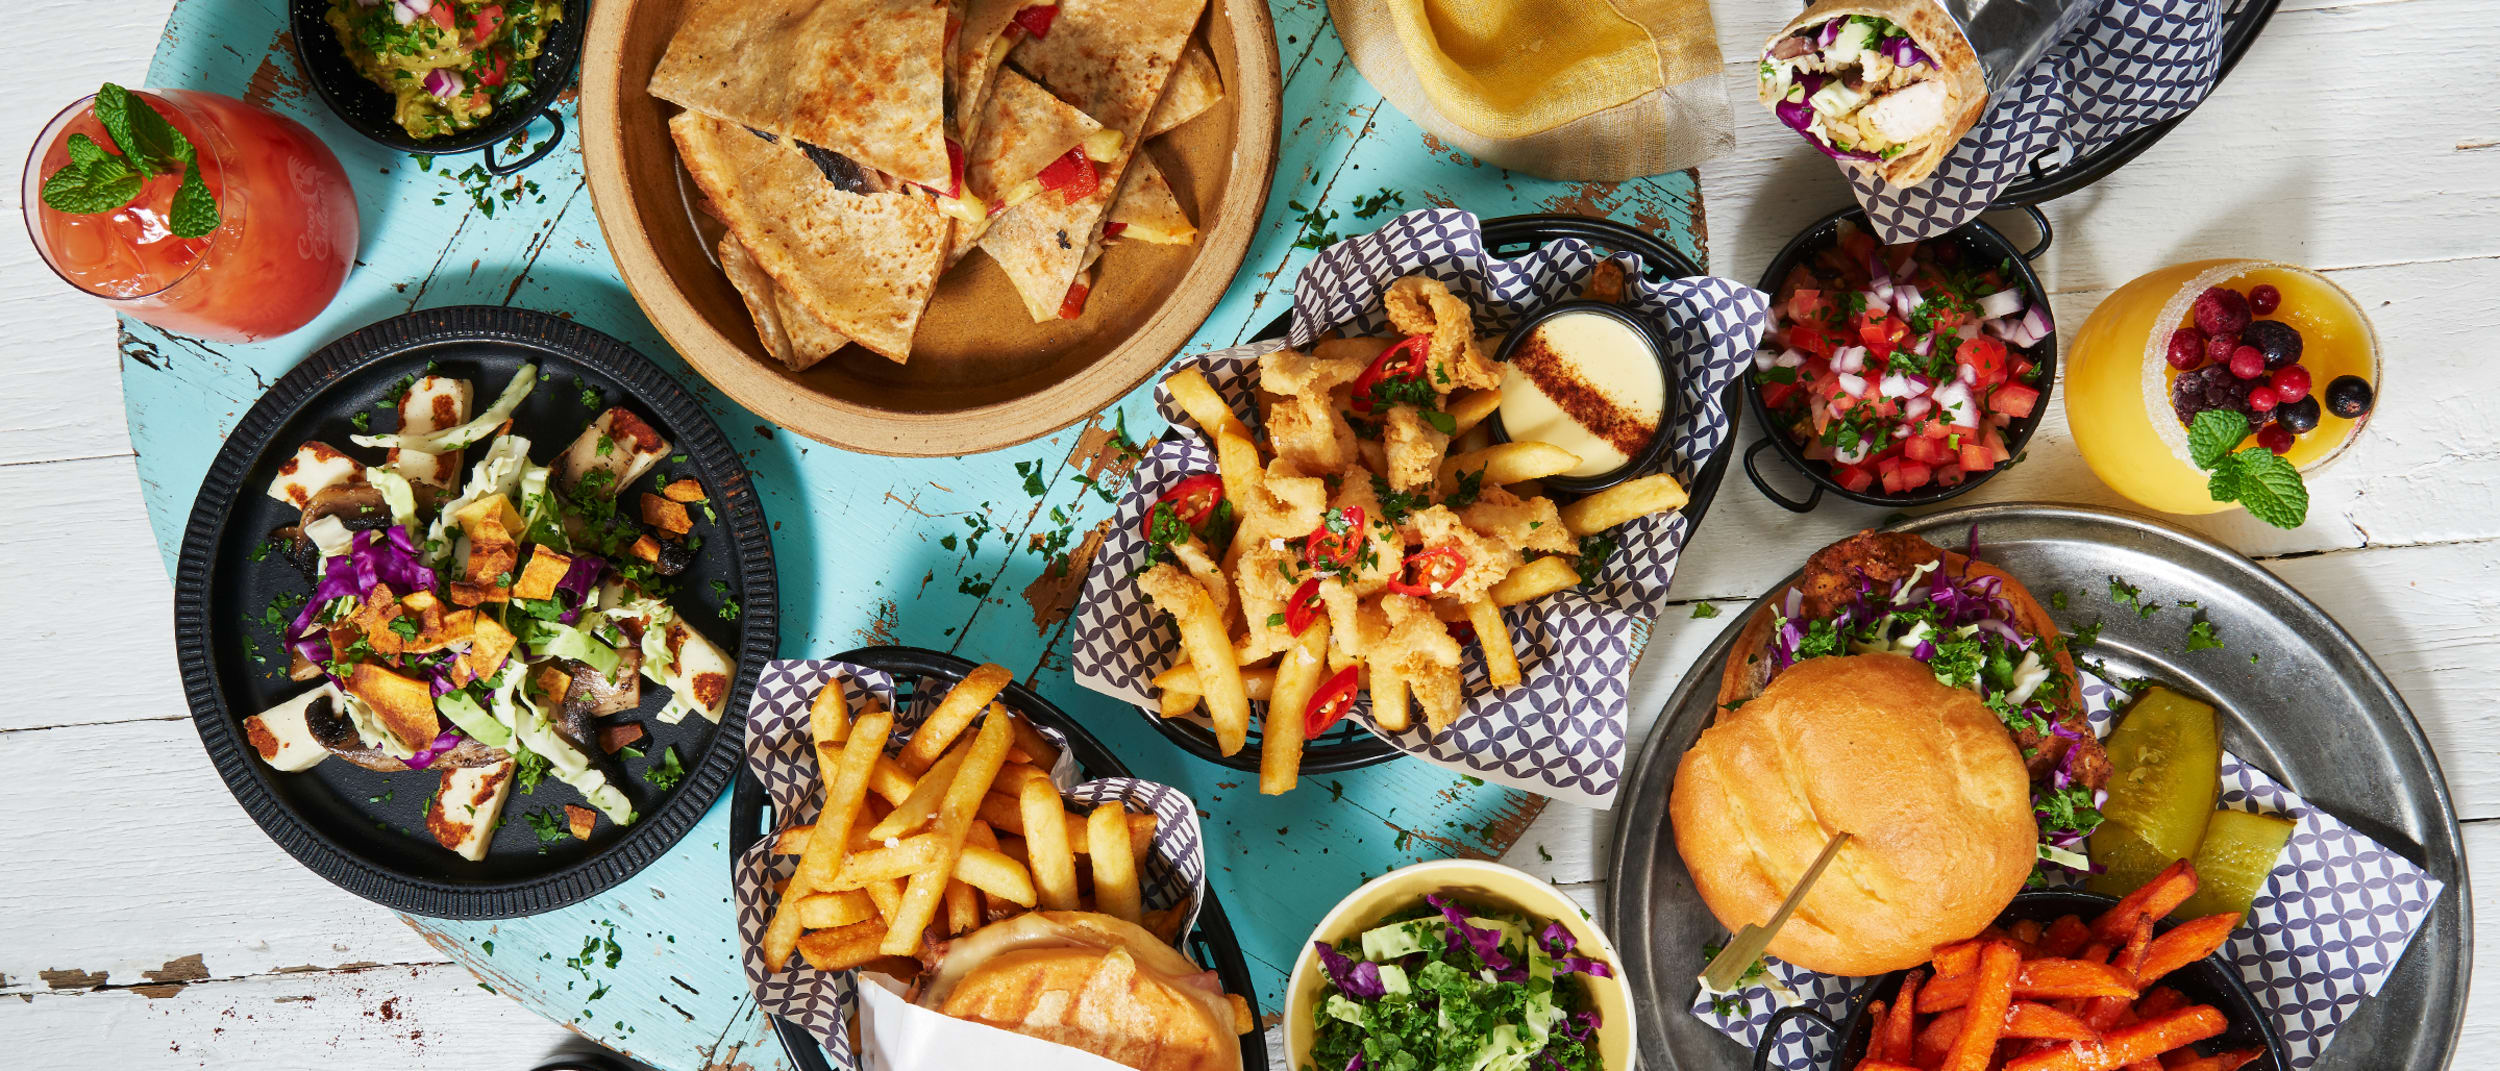 Coco Cubano: $10 lunches - Penrith